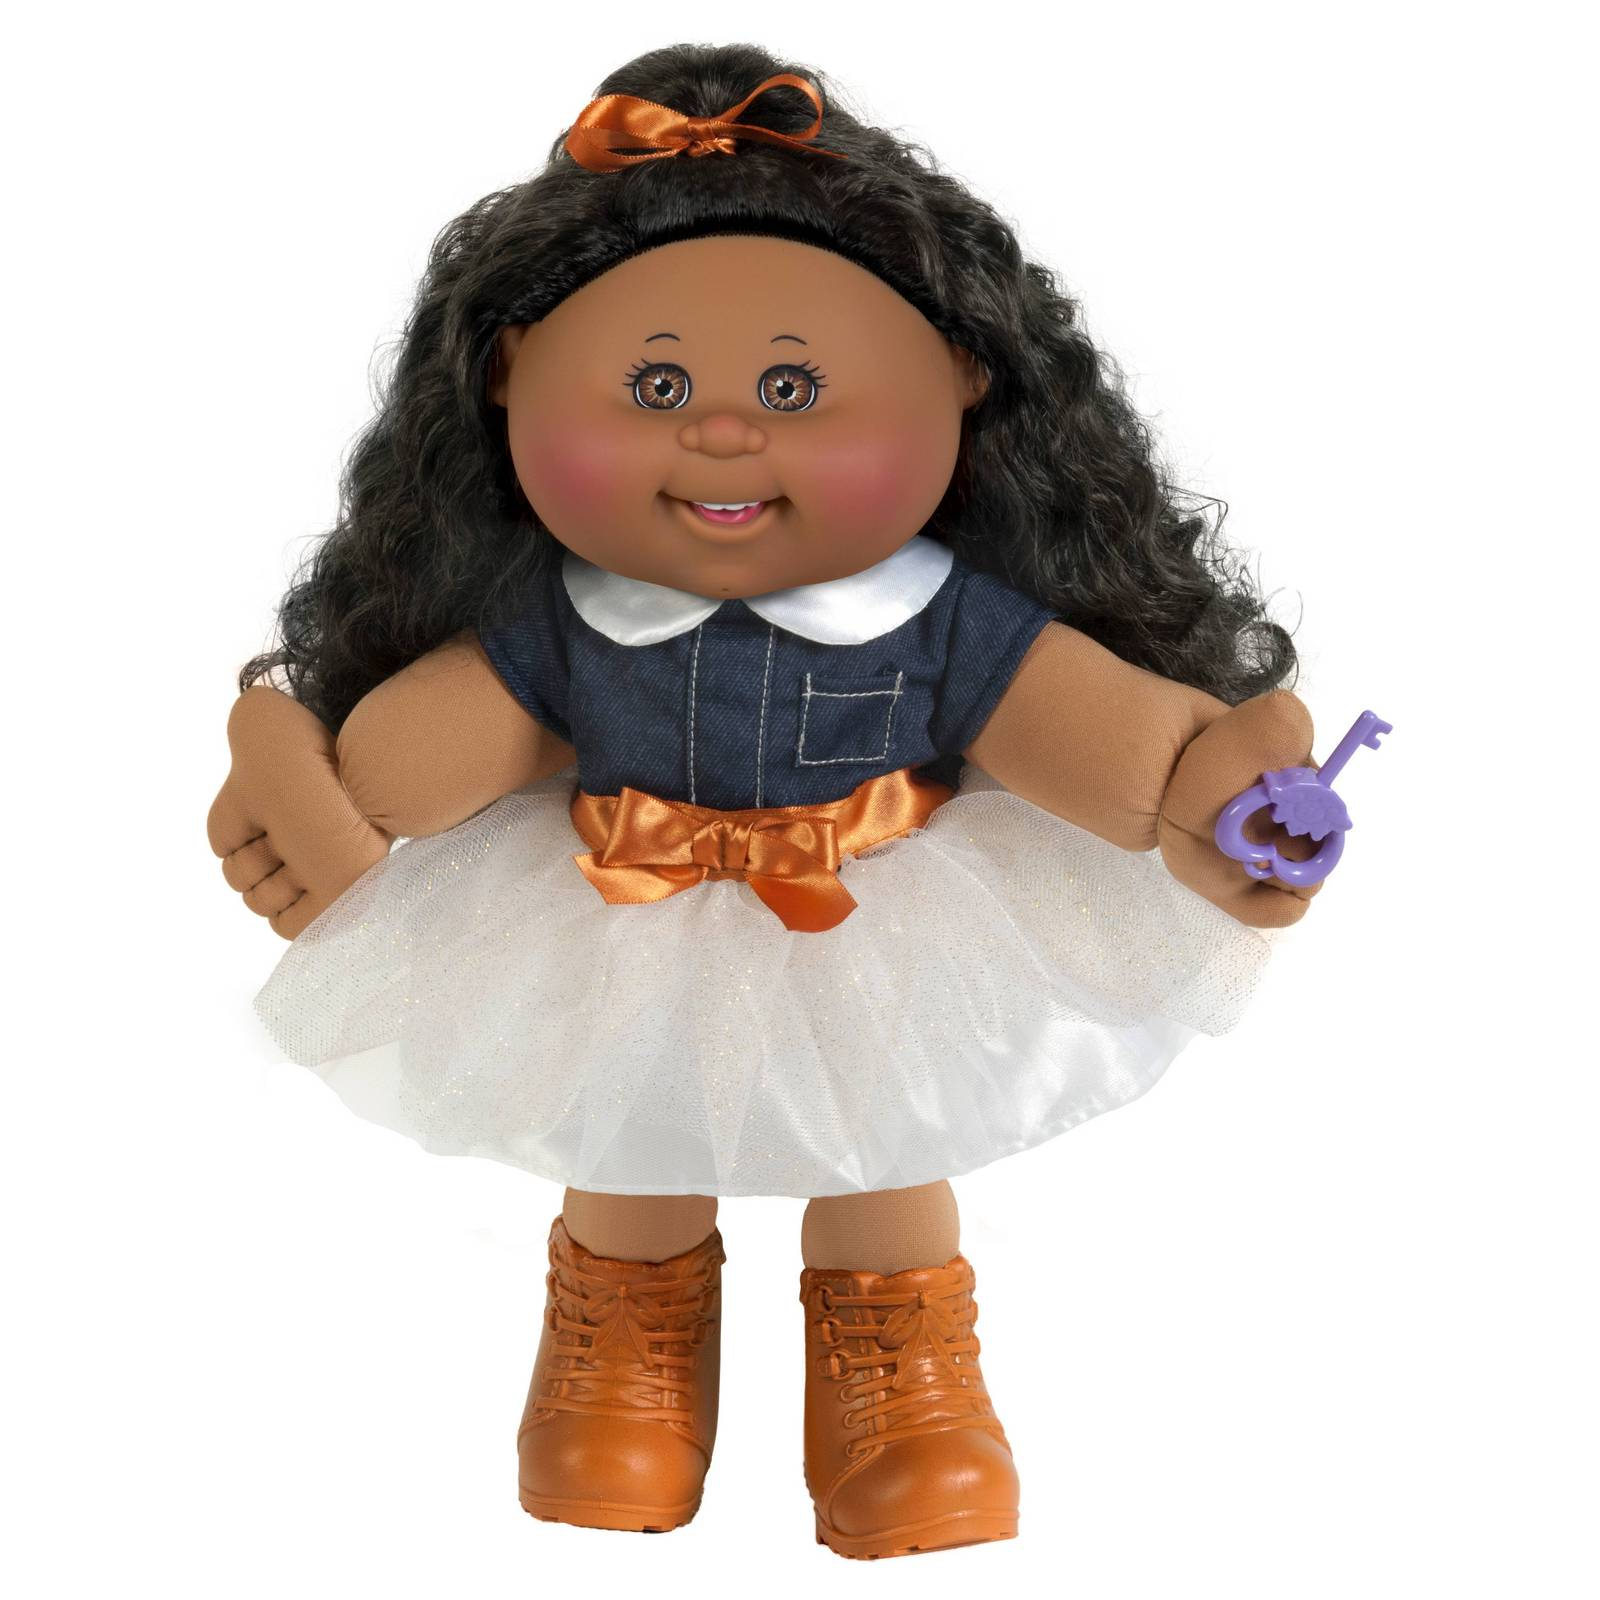 Cabbage Patch Kids 14 Doll, Fernanda and 39 similar items